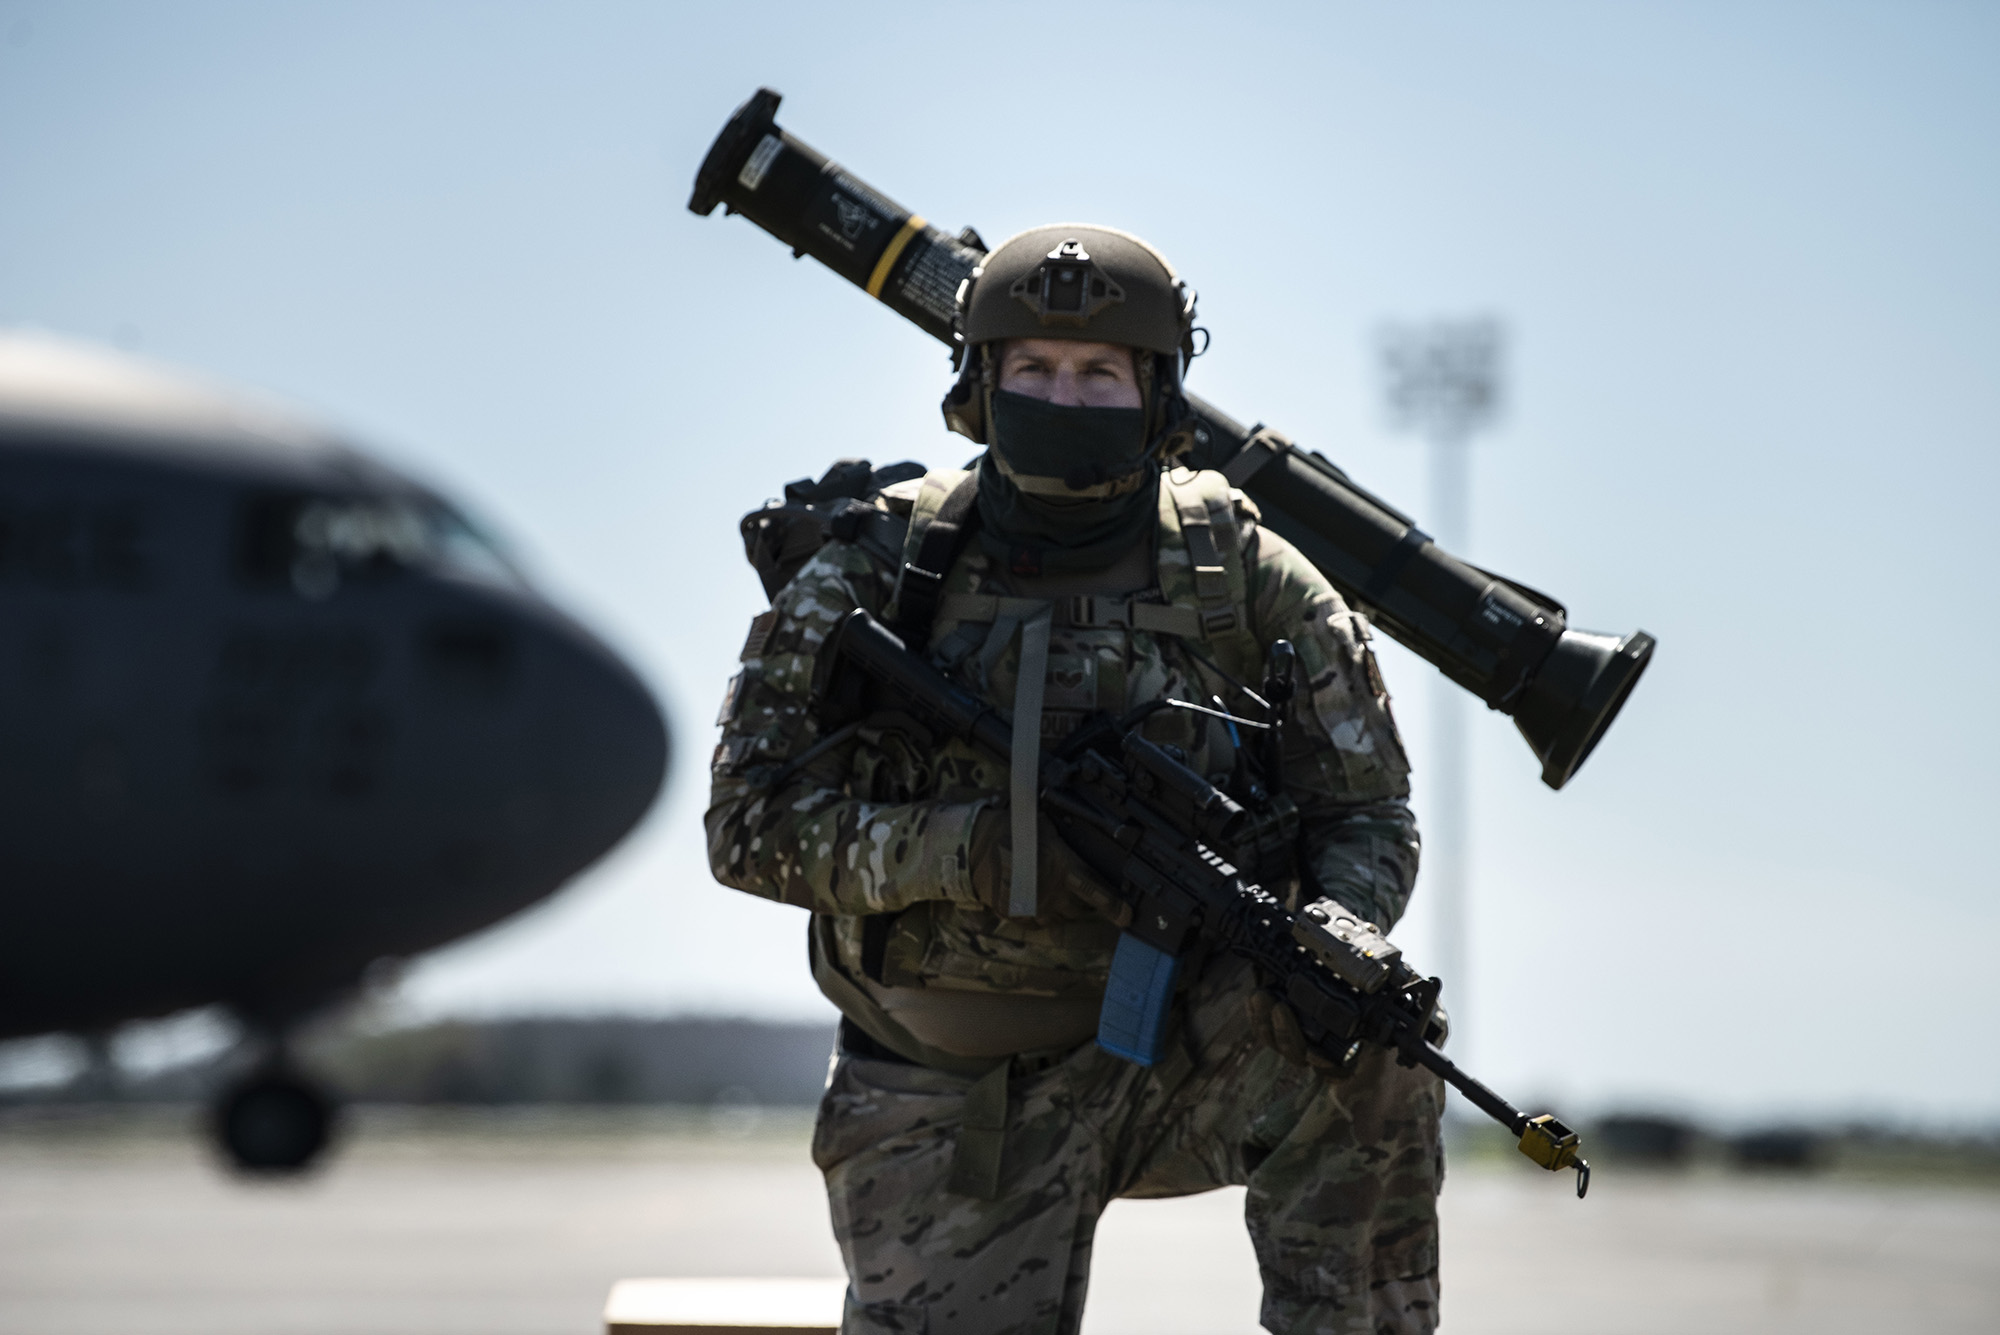 Staff Sgt. David Oulton scans the airfield for threats during exercise Mosaic Tiger Feb. 23, 2021, at Avon Park Air Force Range, Fla. (Staff Sgt. Carly E. Kavish/Air Force)